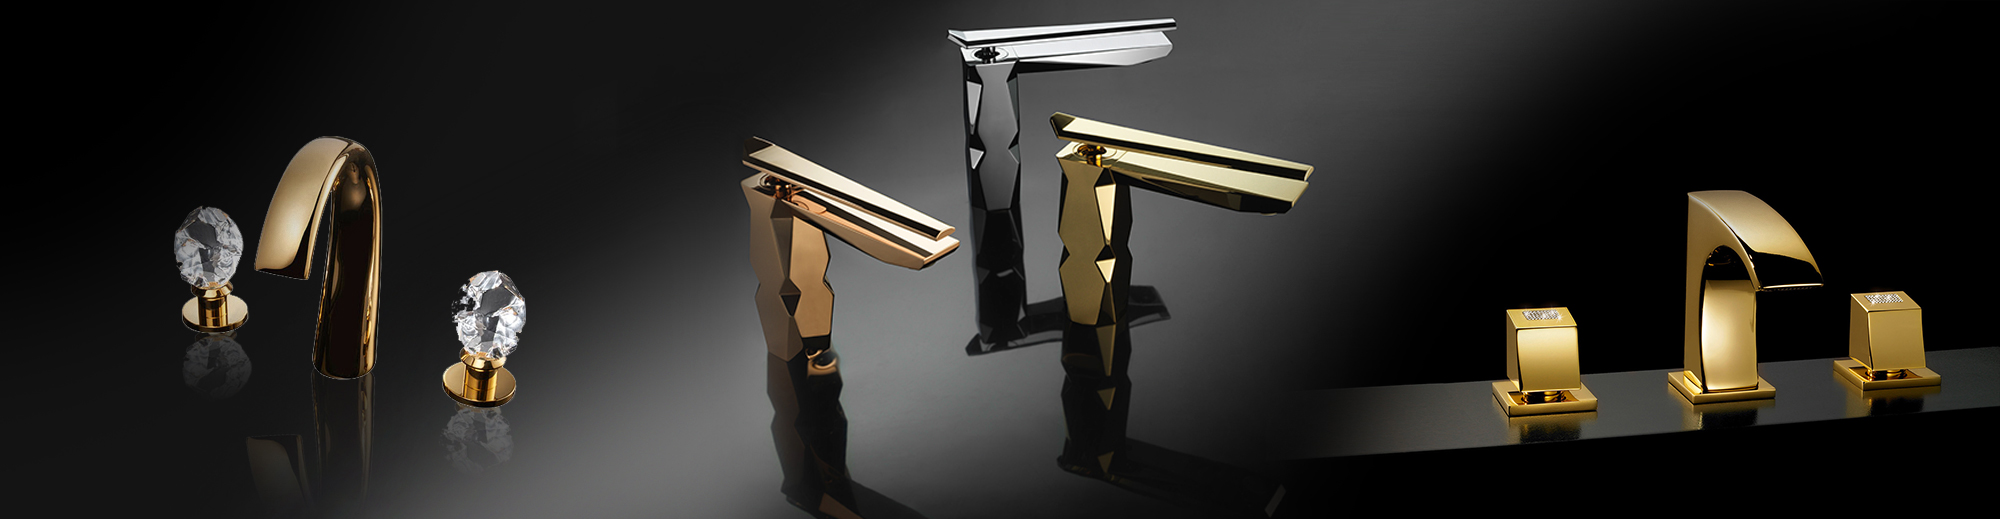 A collection of bathroom faucets